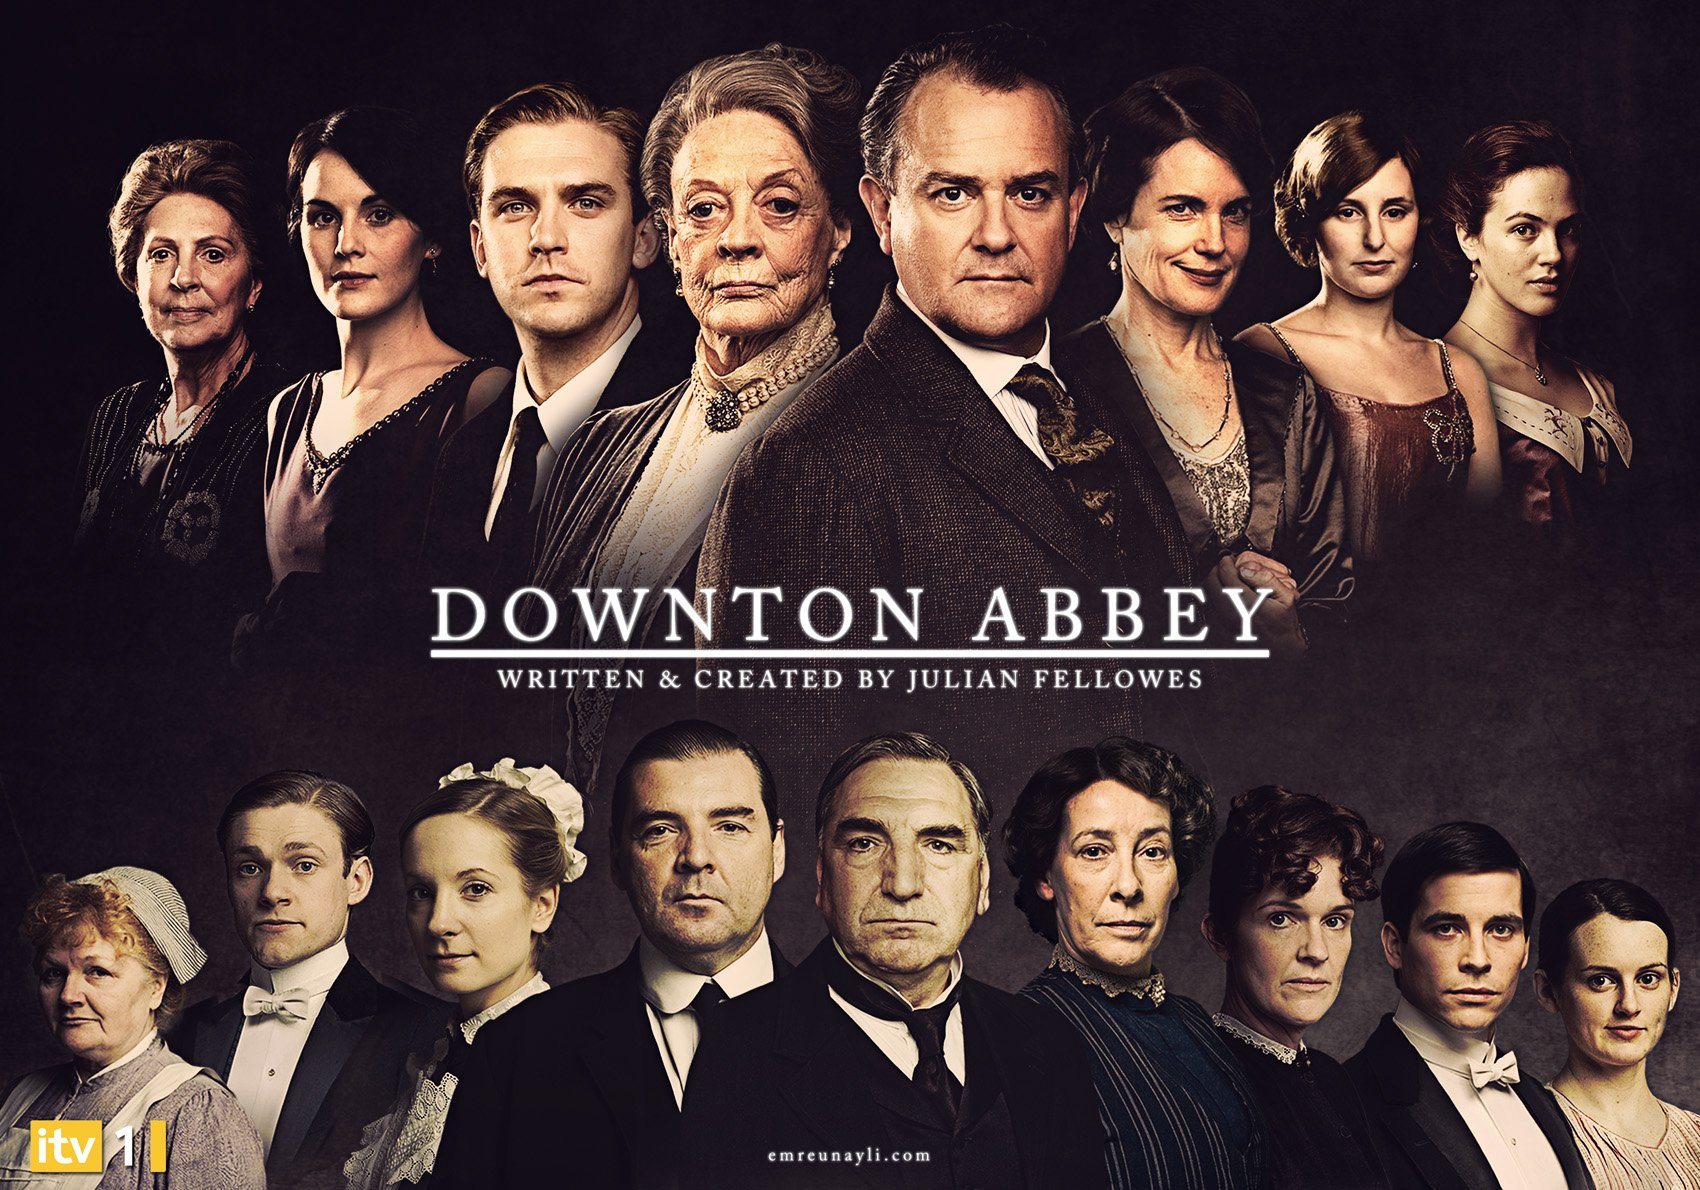 Downton Abbey images Cast at Radio Times wallpaper and background 1700x1190